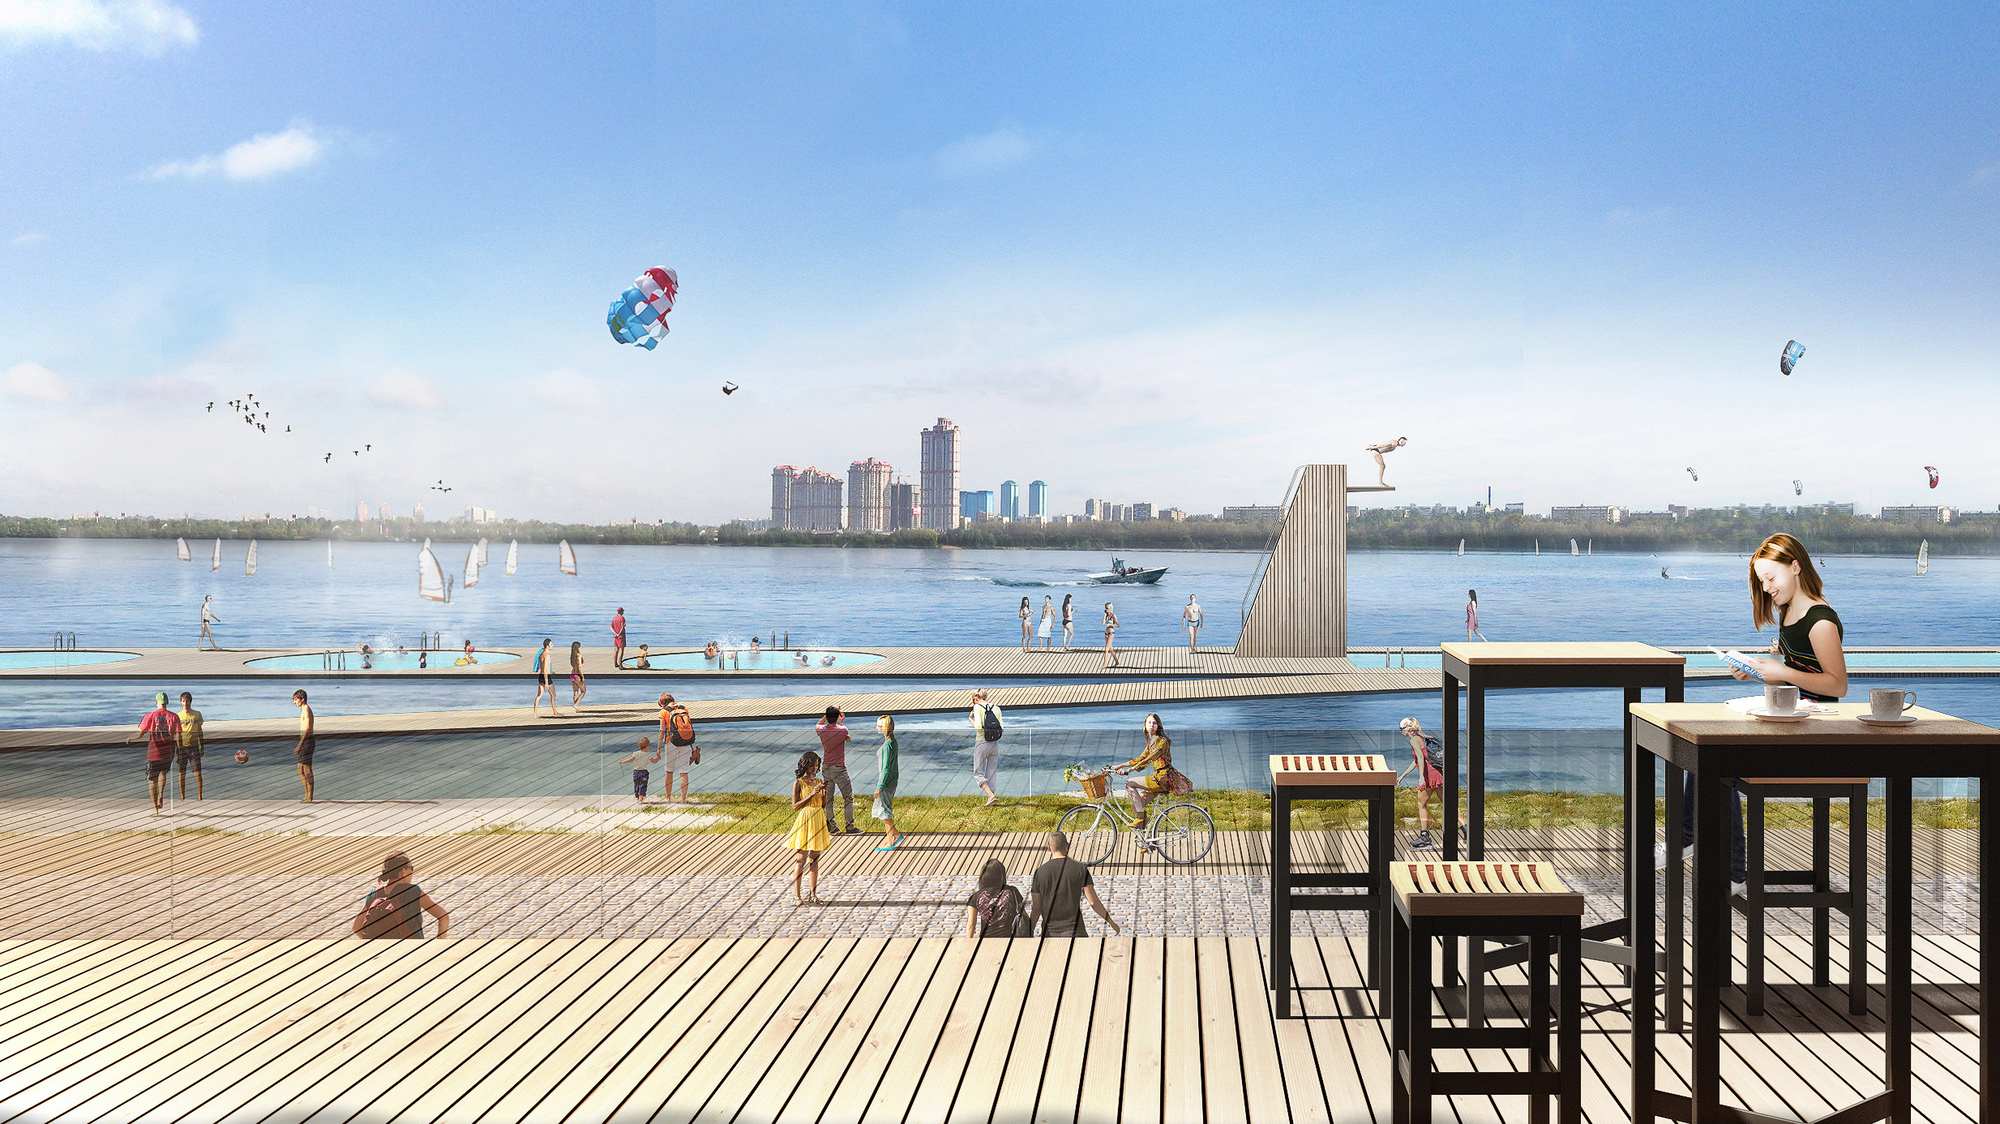 548a36ece58ece0d79000038_project-meganom-wins-contest-to-transform-moscow-riverfront_10-siver_lake_port